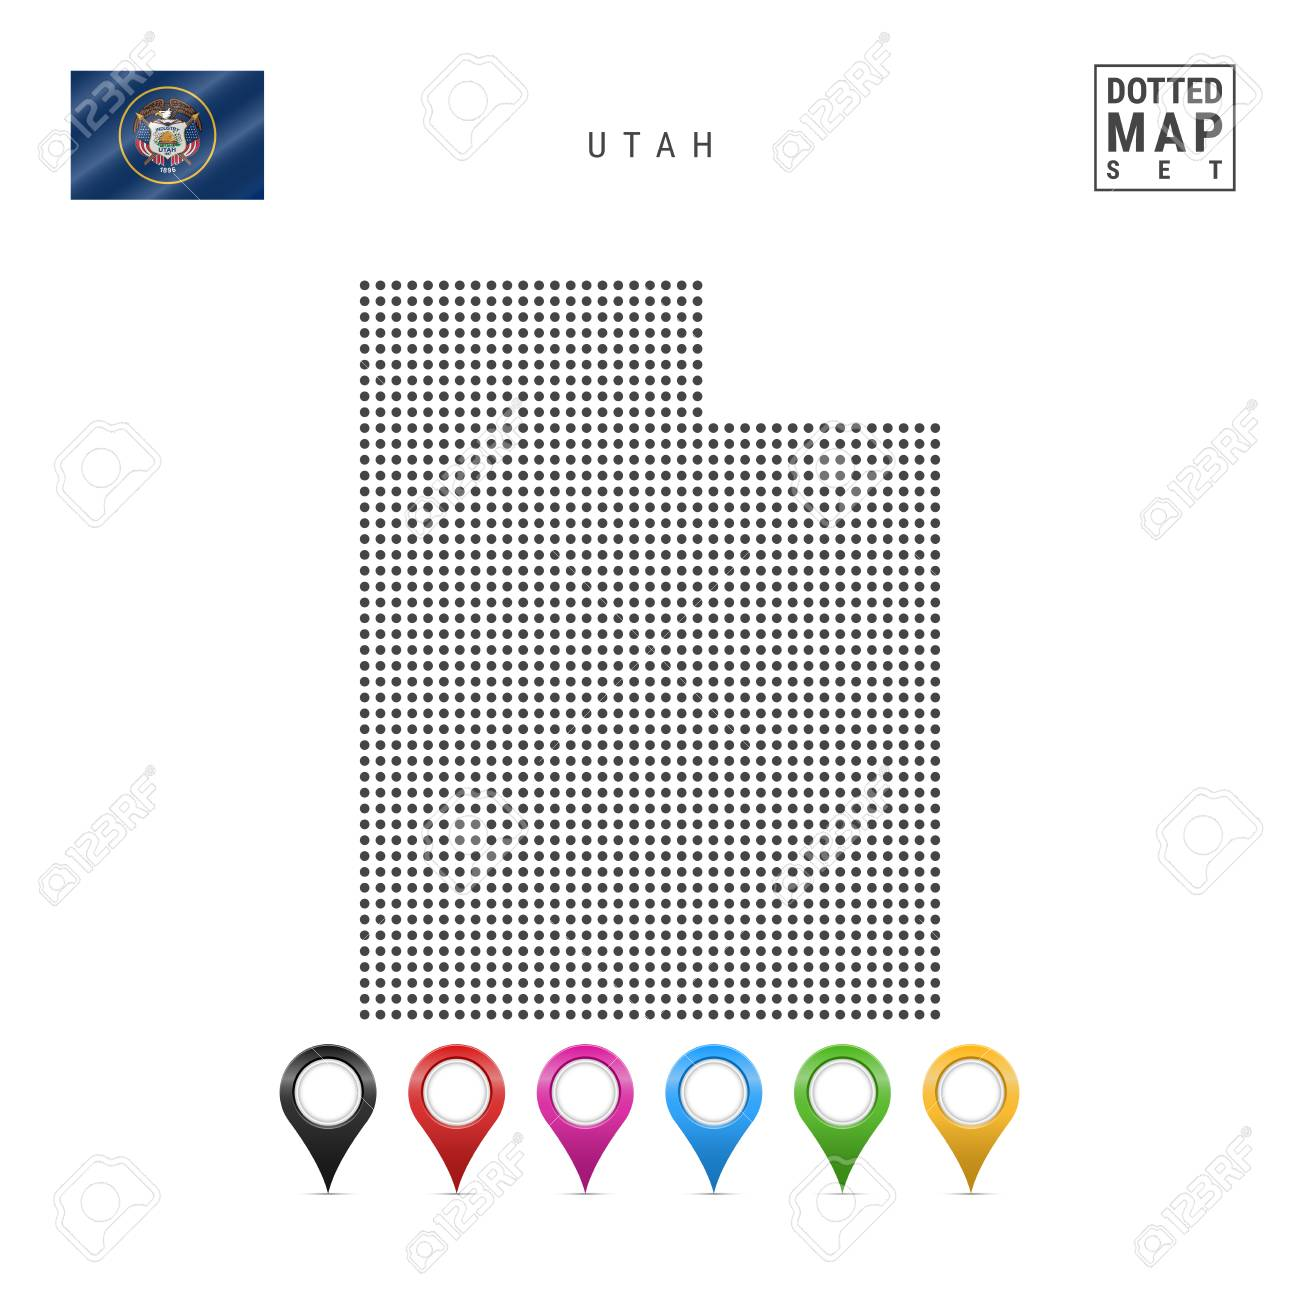 Dots Pattern Vector Map of Utah. Stylized Simple Silhouette of Utah. The Flag of the State of Utah. Set of Multicolored Map Markers. Illustration Isolated on White Background. - 110348400